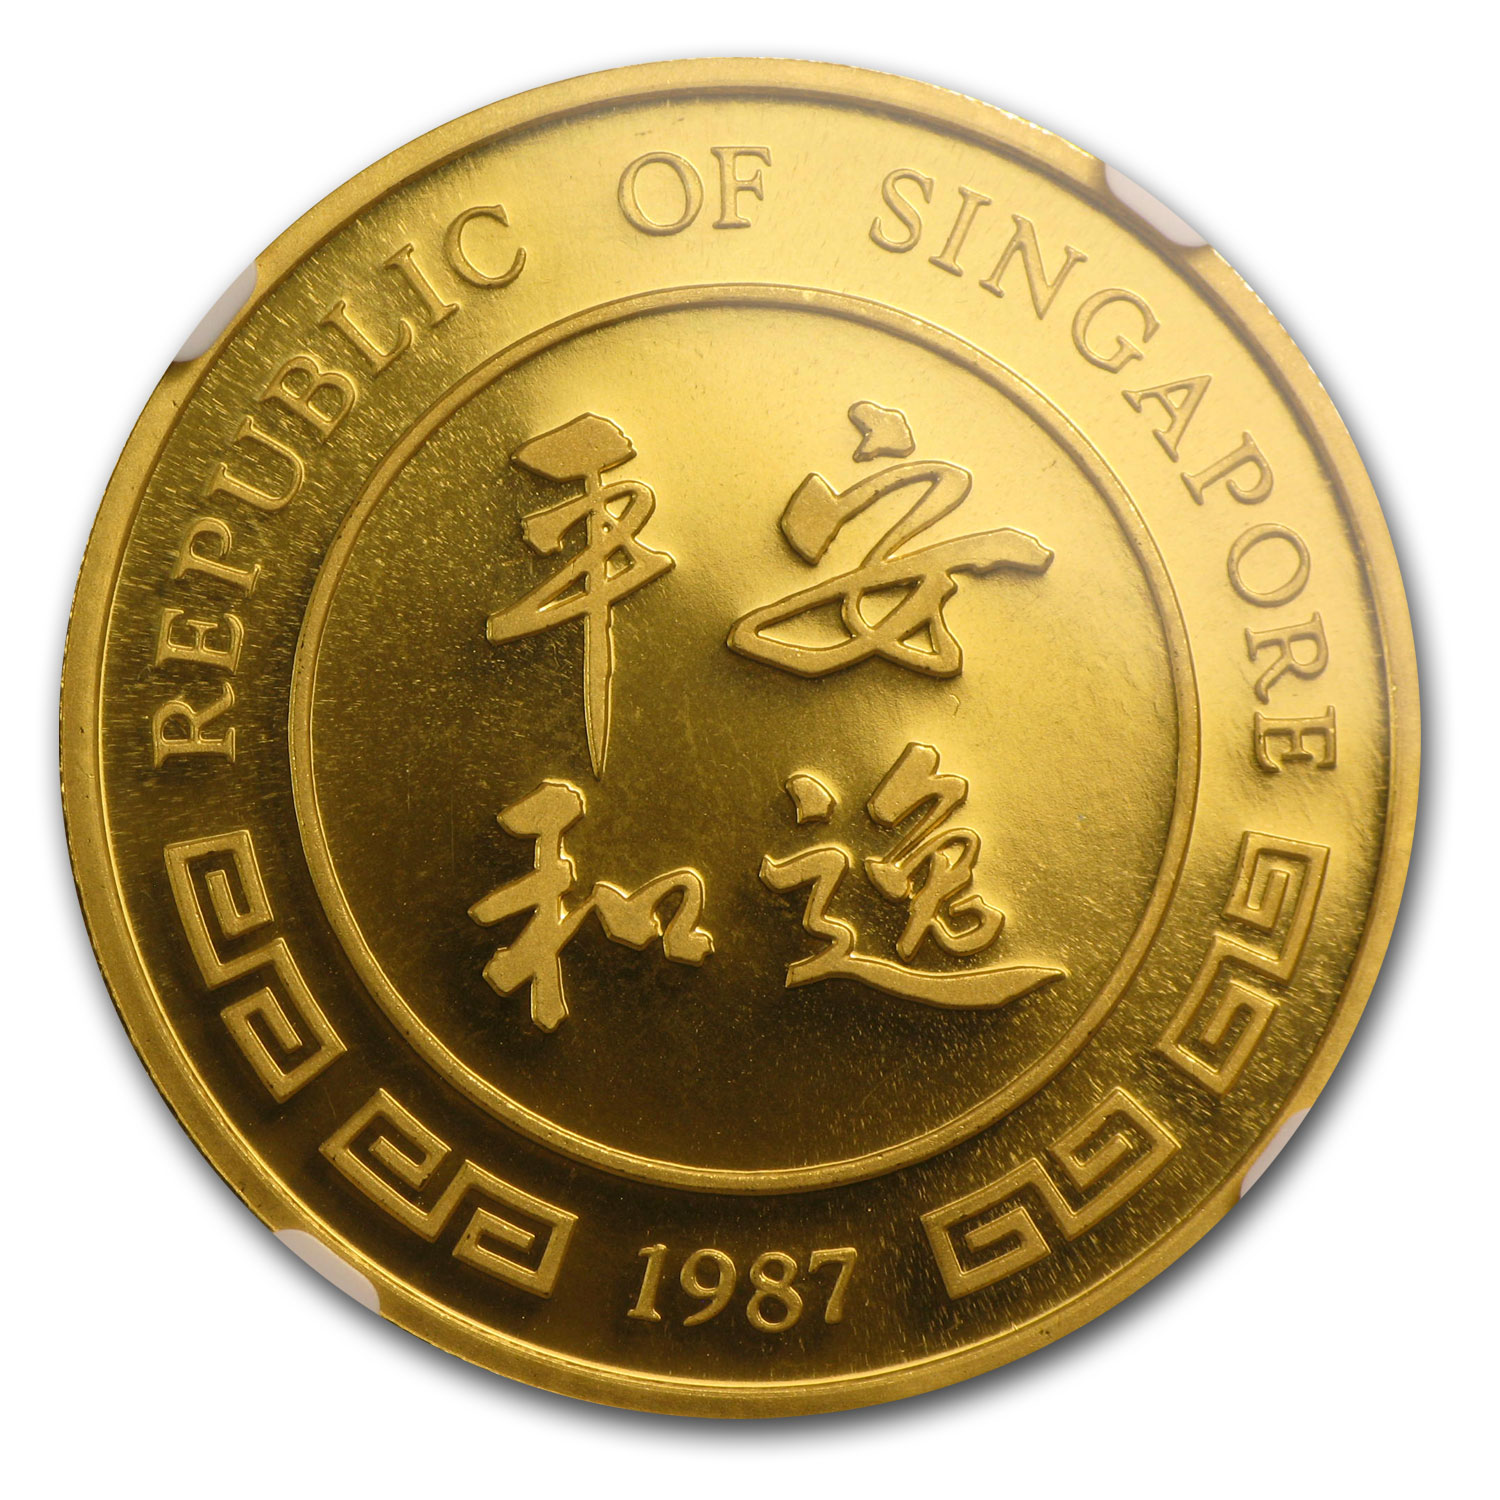 1987 Singapore 1 oz Proof Gold 100 Singold Rabbit PF-69 NGC